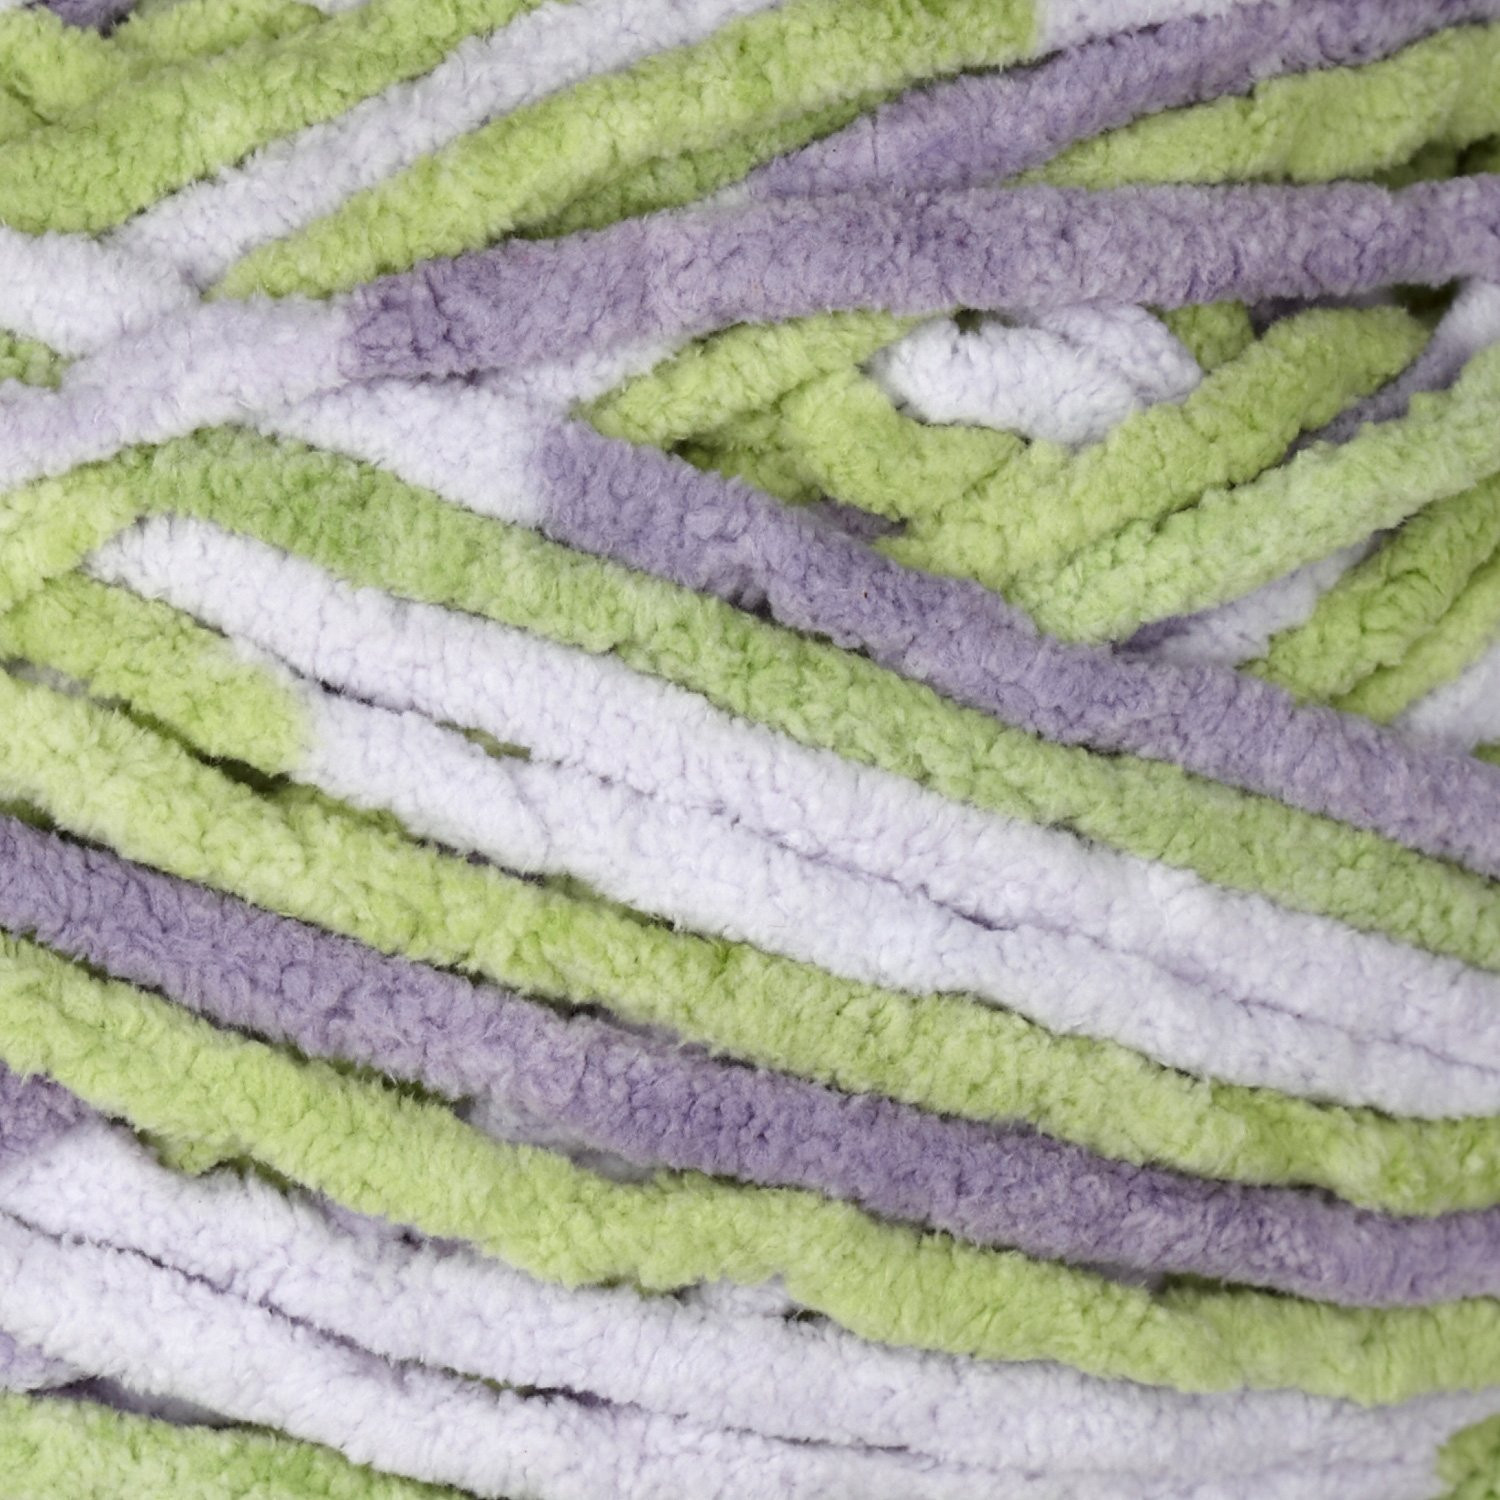 Bernat Blanket Yarn Luxury Bernat Blanket 300g American Yarns Of Beautiful 42 Models Bernat Blanket Yarn